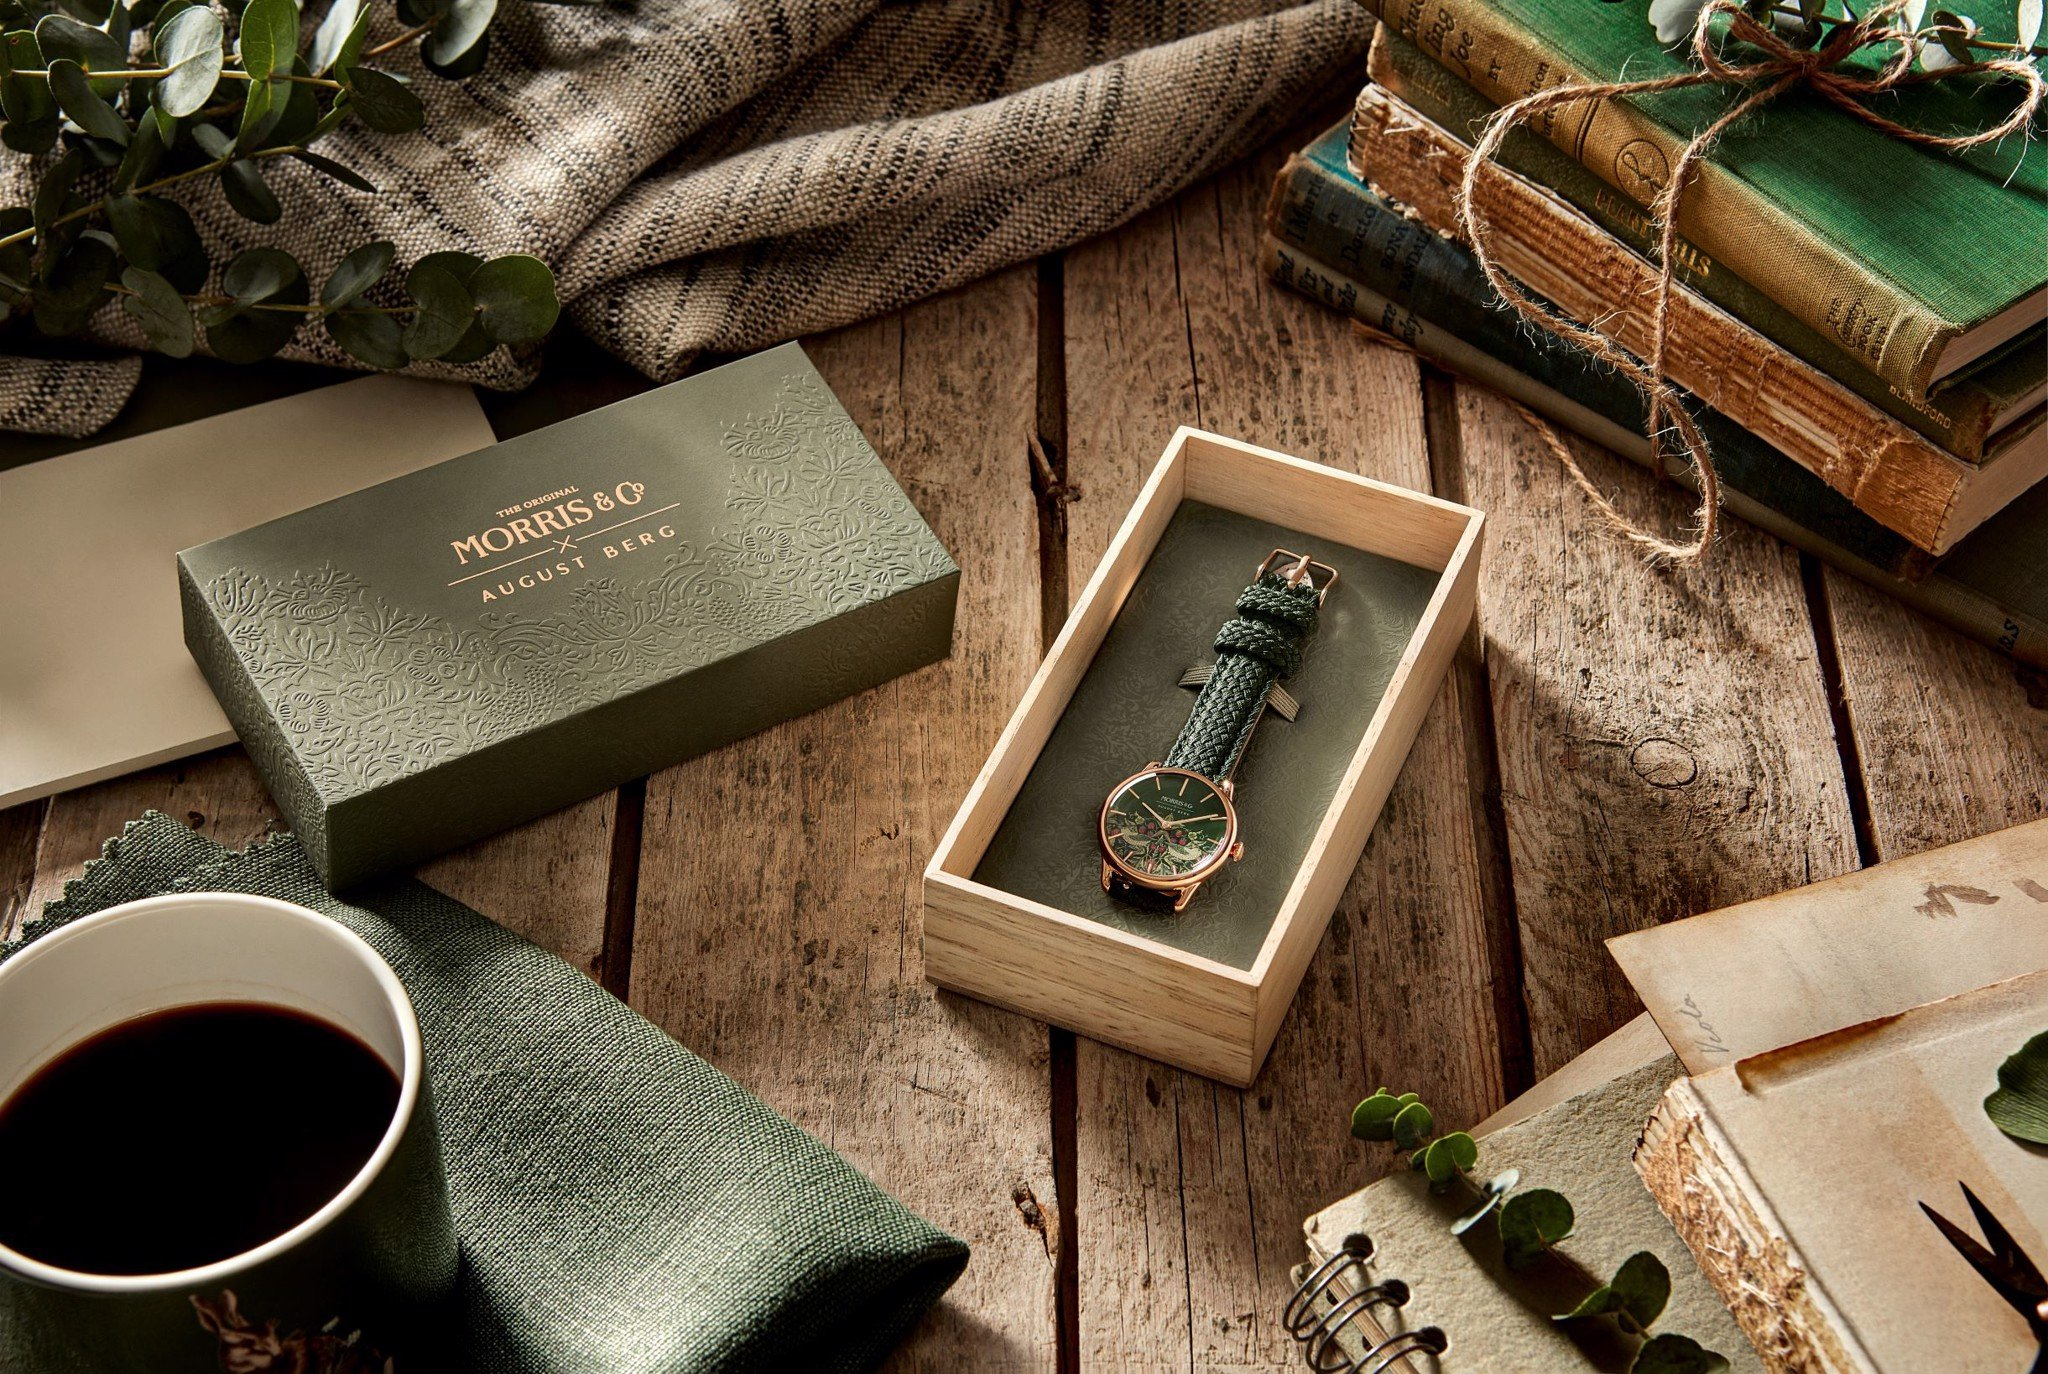 MORRIS & CO. X AUGUST BERG COLLECTION